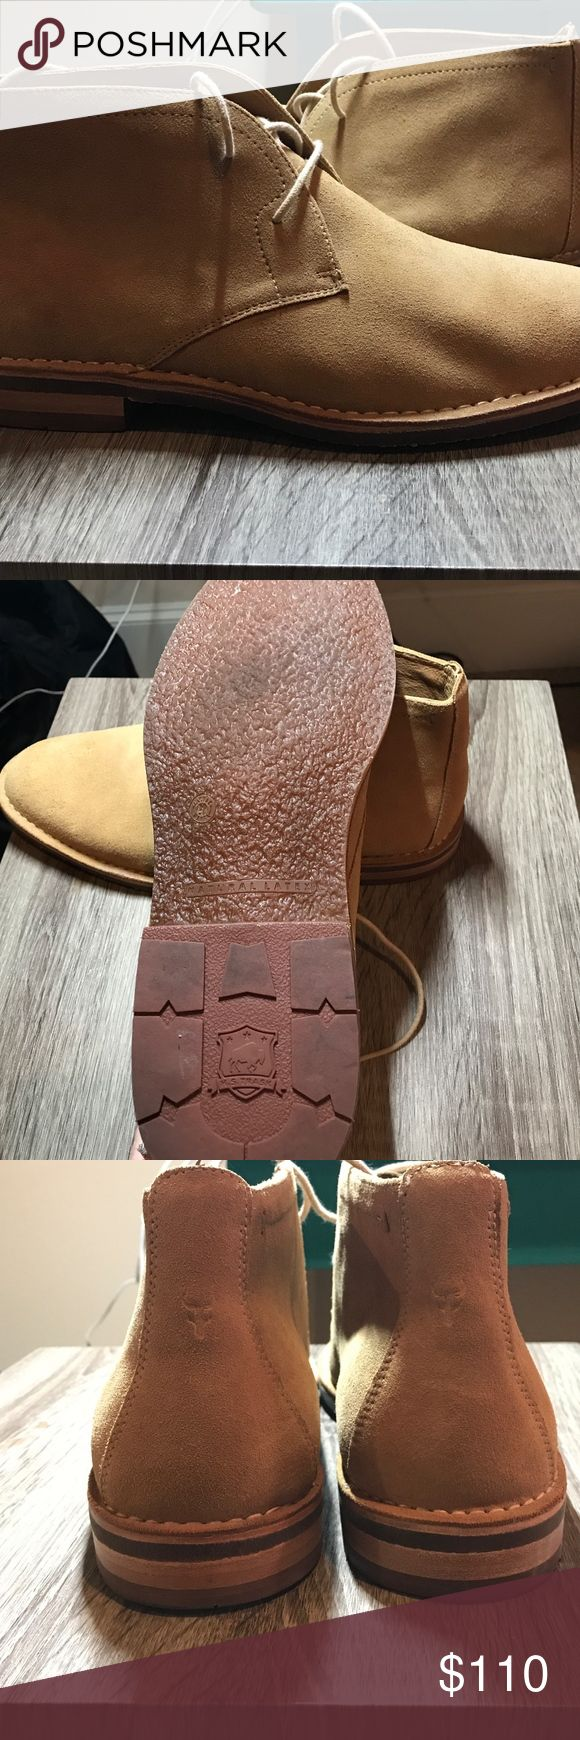 Men's Boots Men's size 12 boots - Tan Suede Tresk Shoes Chukka Boots